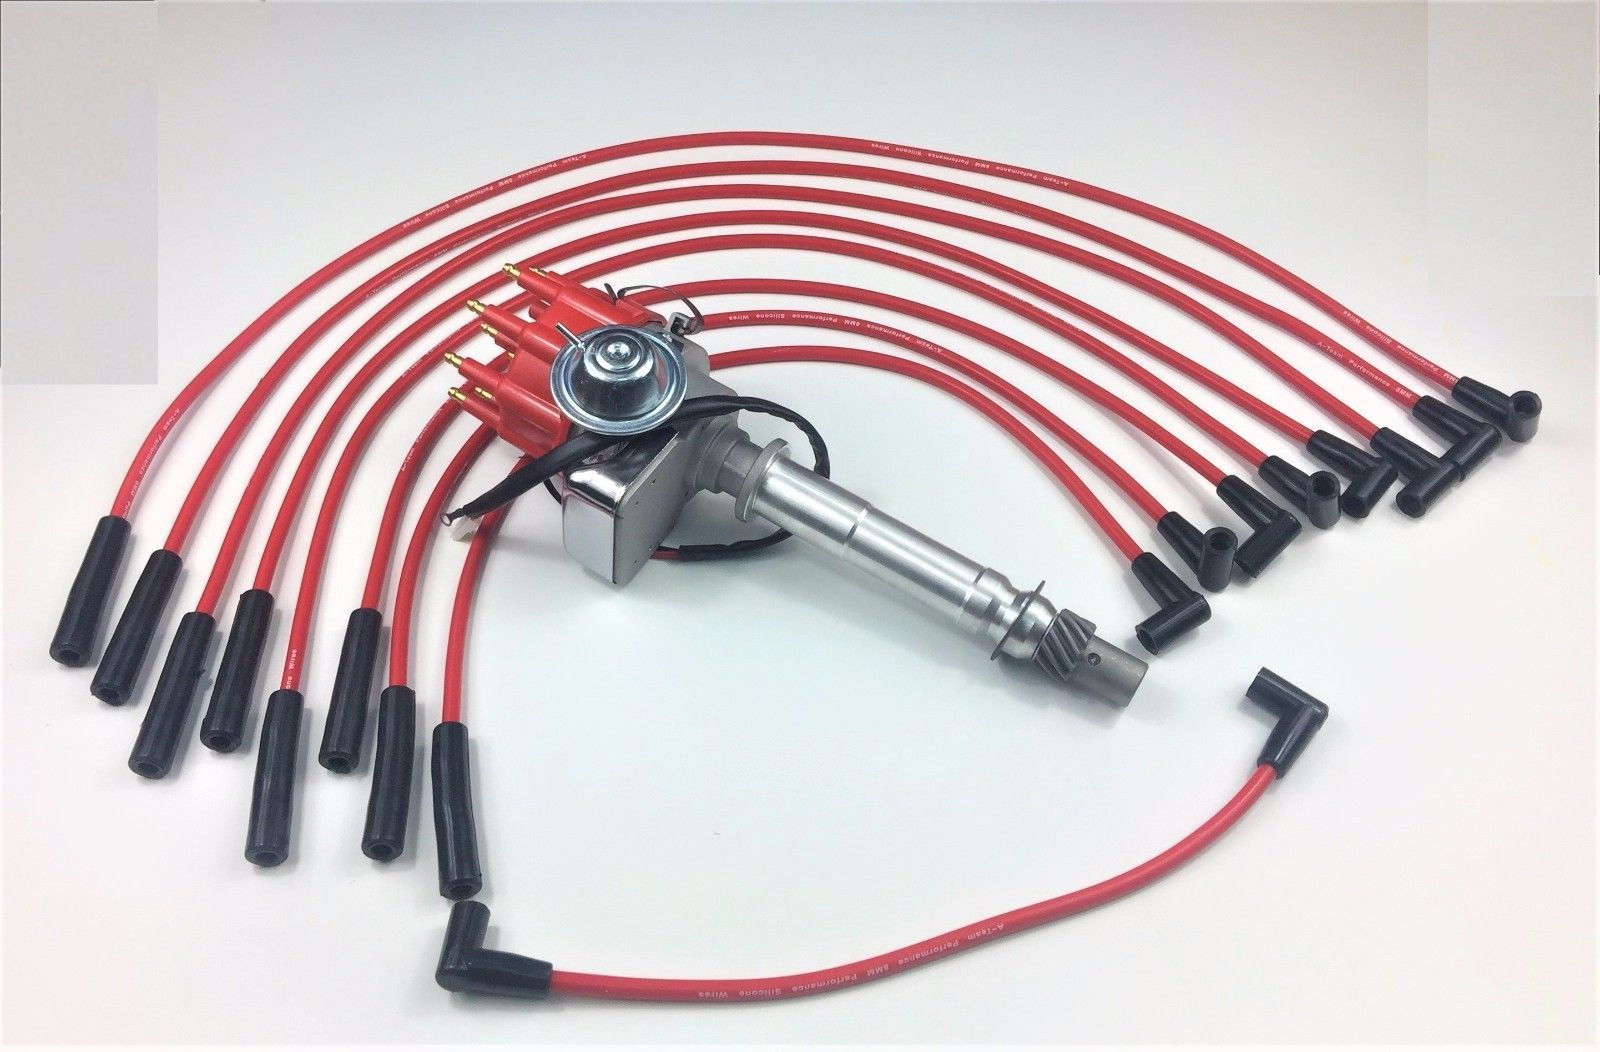 BBC CHEVY 396 454 SMALL CAP DISTRIBUTOR + RED 8mm SPARK PLUG WIRES STRAIGHT BOOT